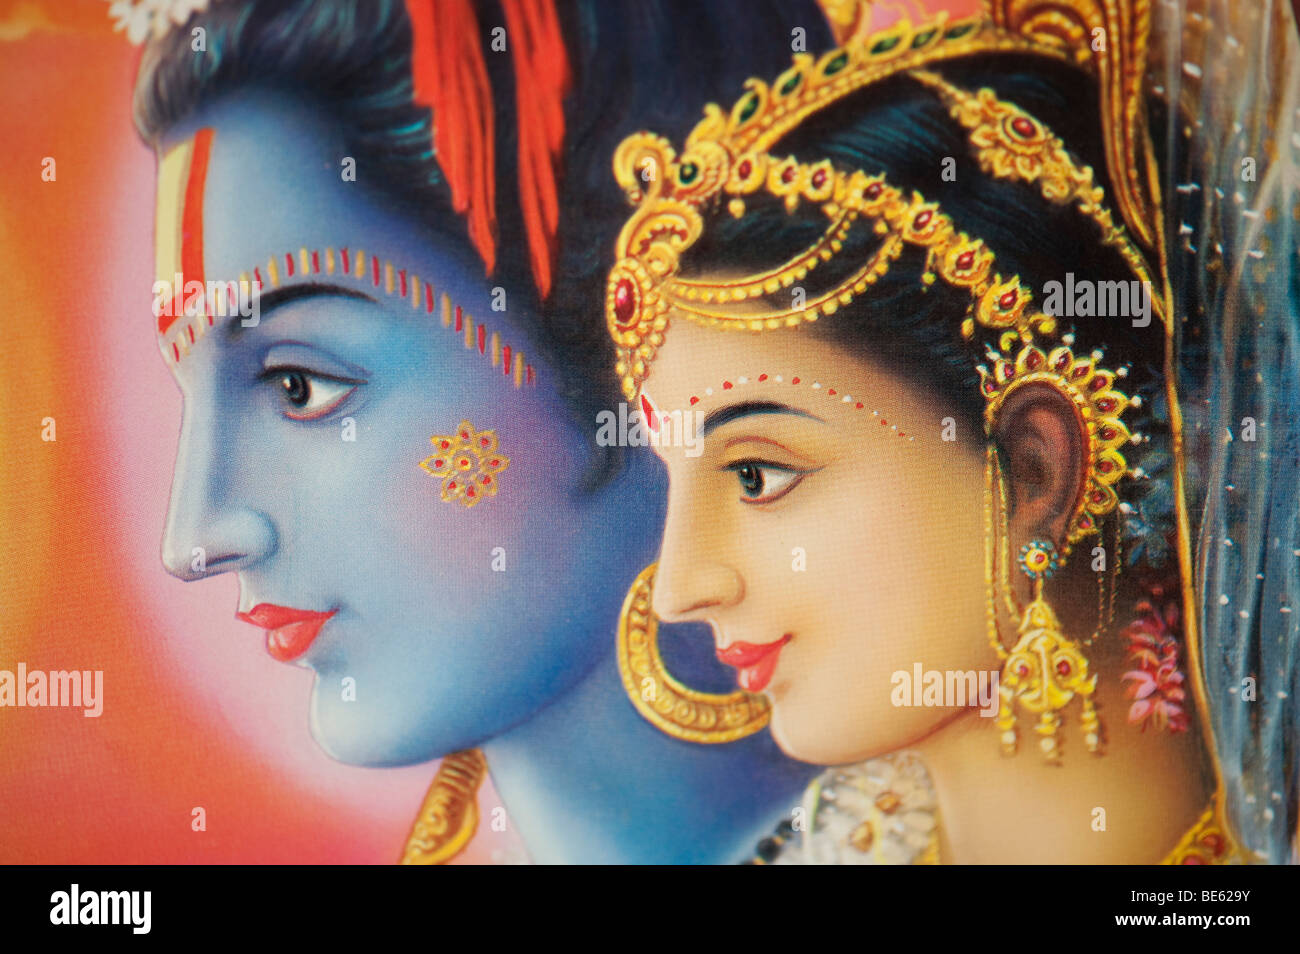 Hindu God, Lord Rama And Sita Depicted On An Indian Poster